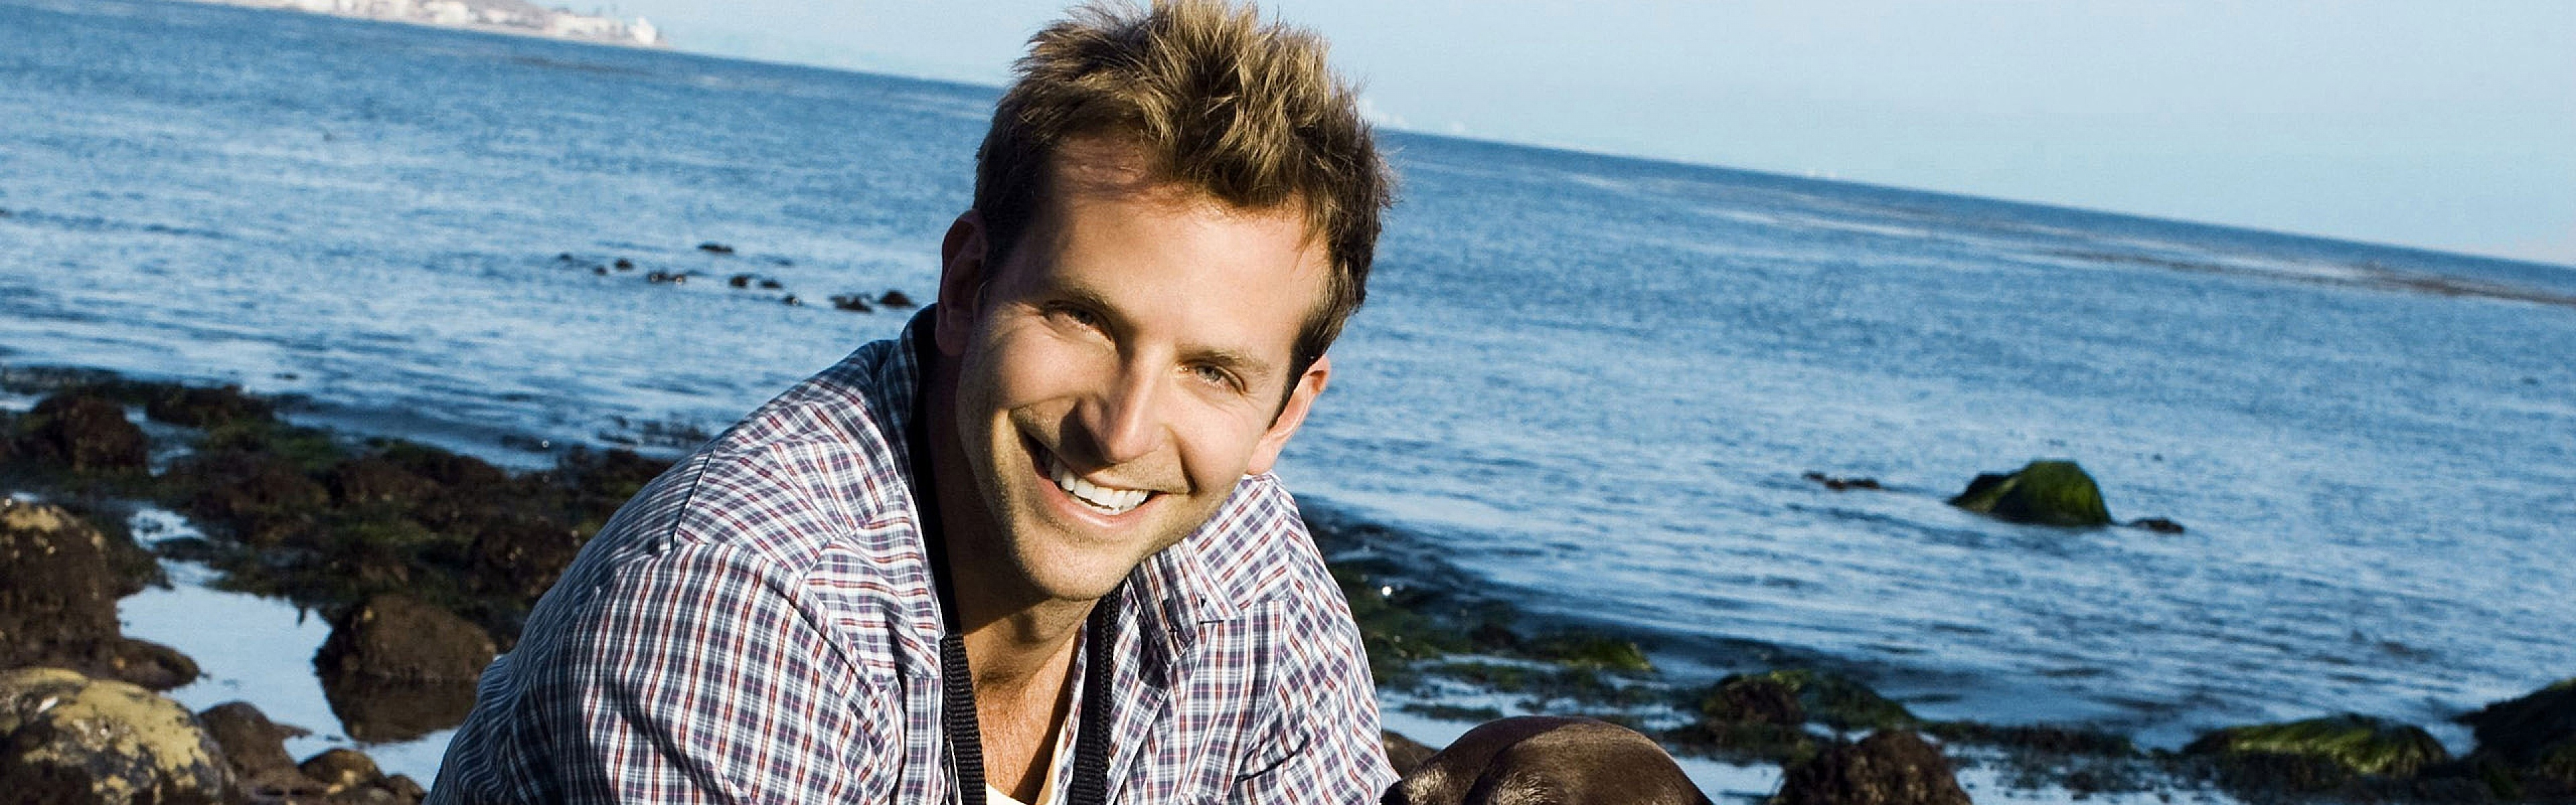 bradley cooper wallpapers wallpapersafari